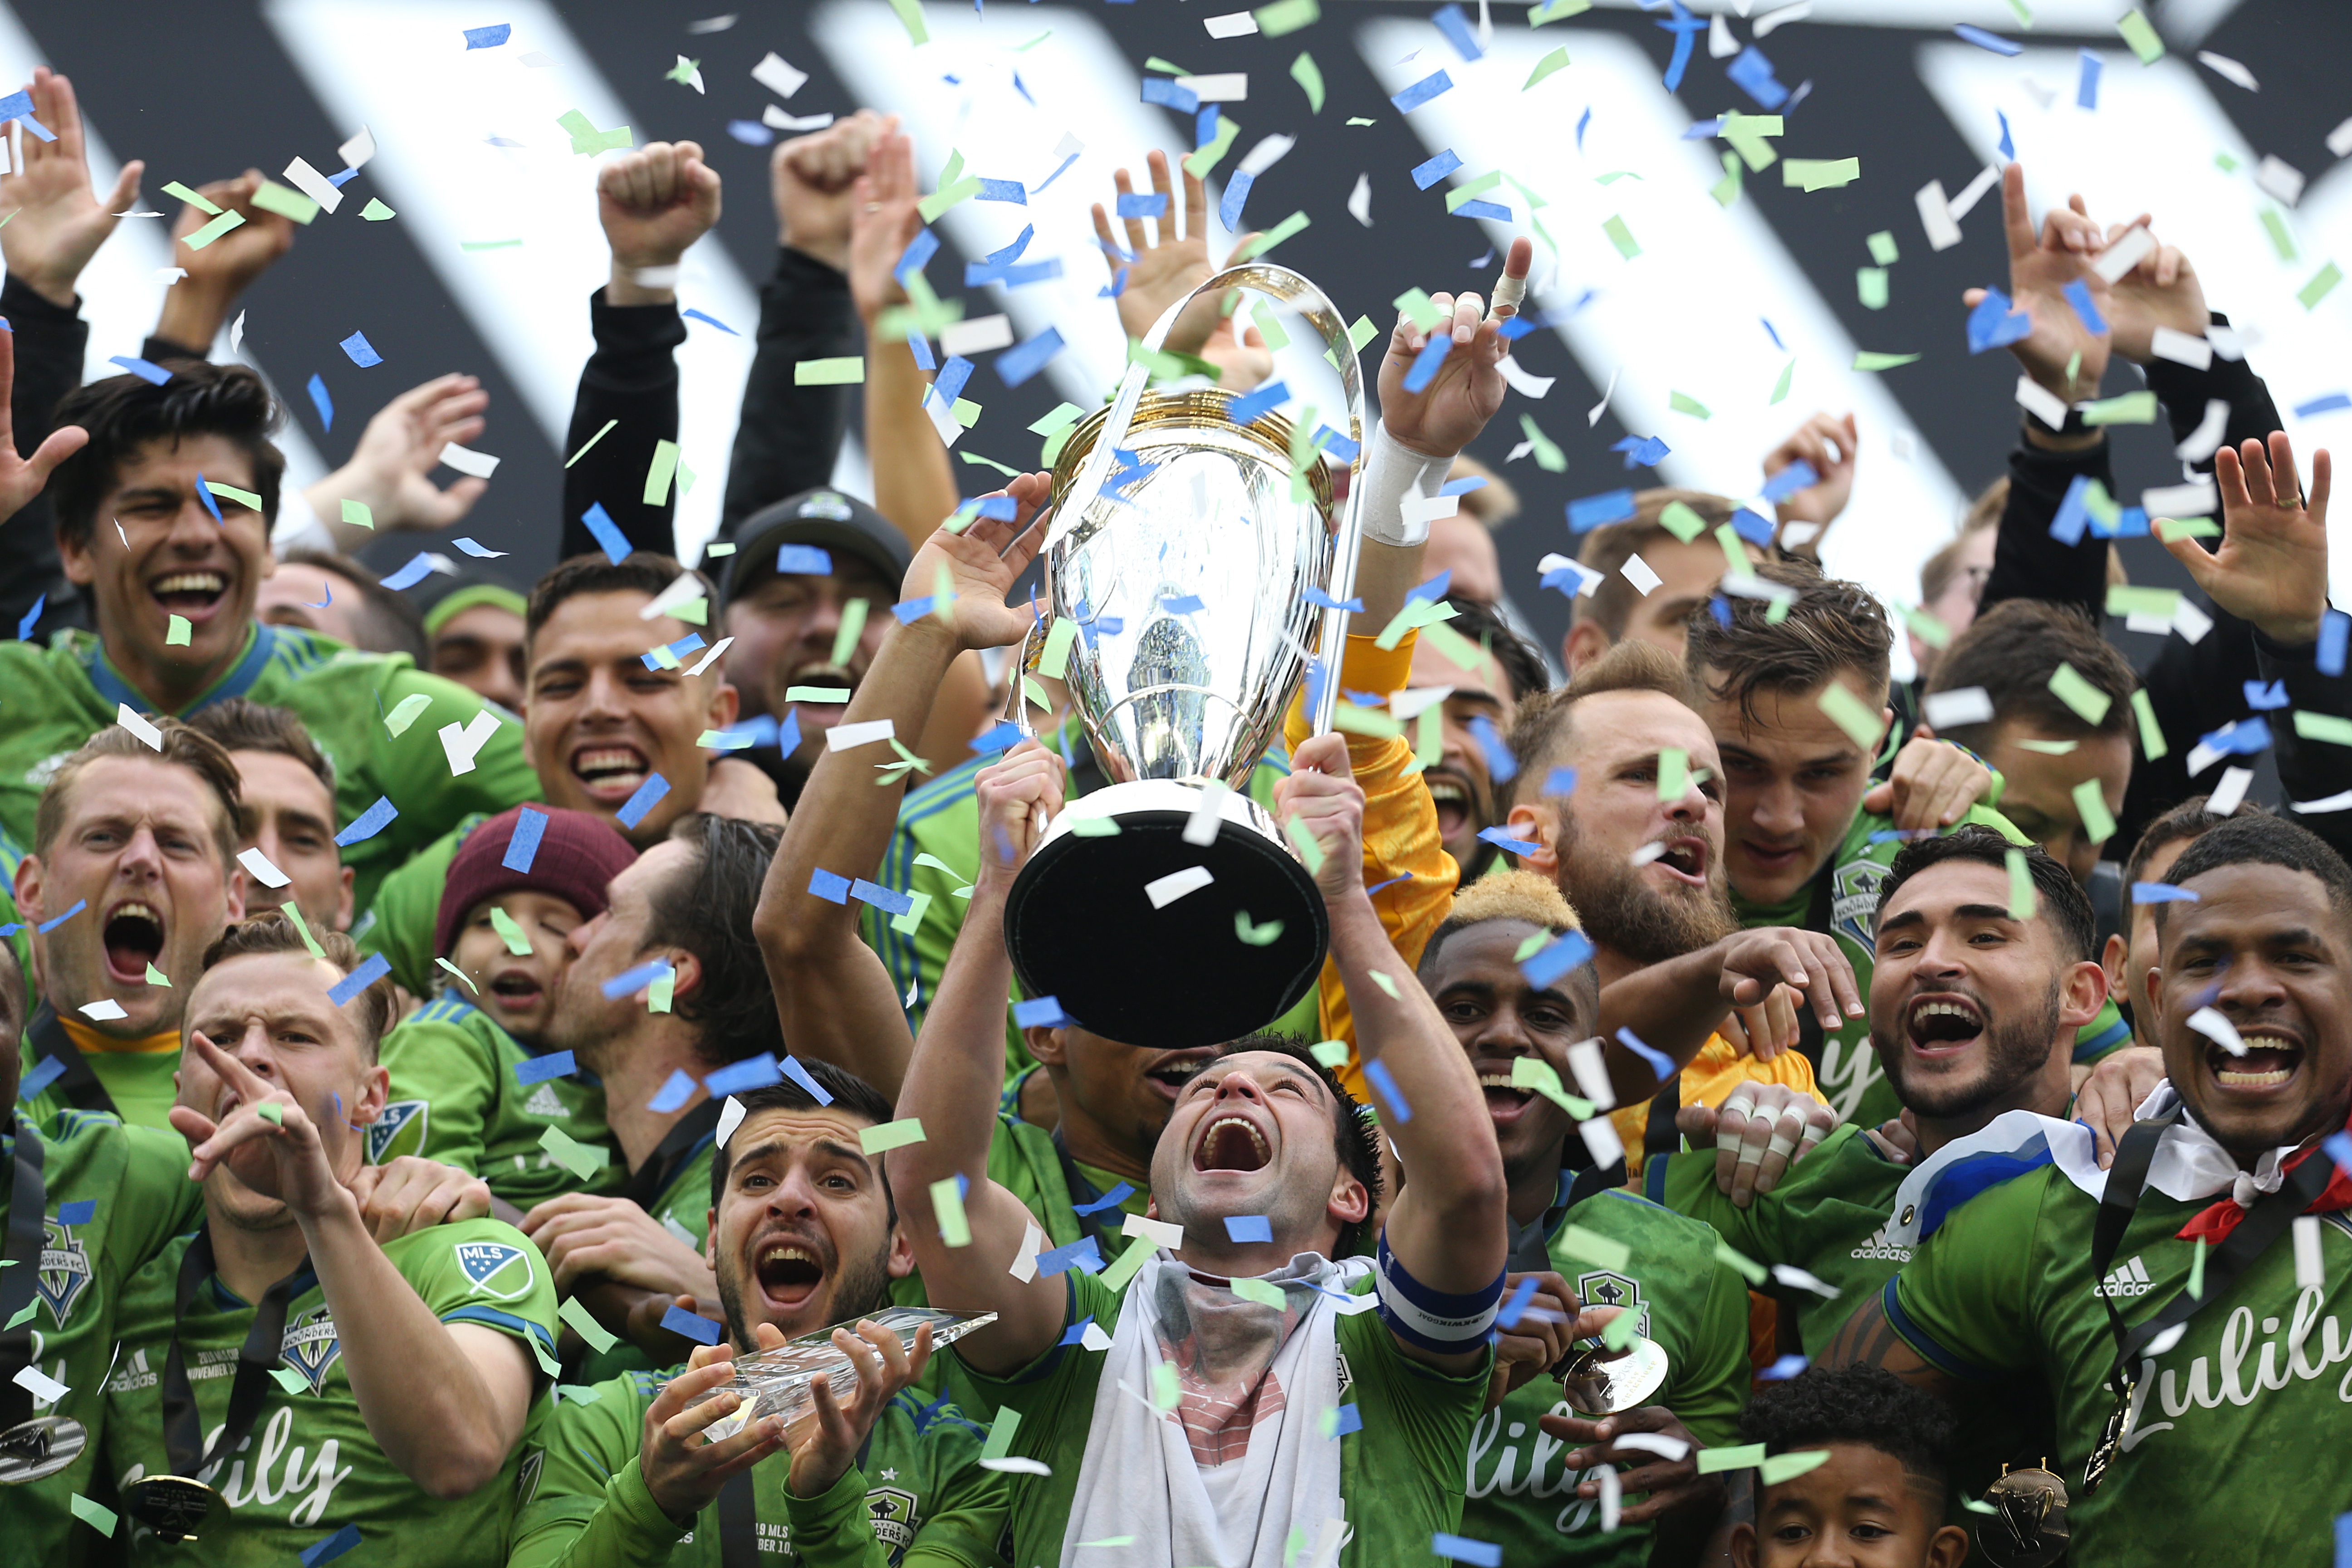 Sounders Victory Parade: Where to Eat, Get Coffee, and Continue to Party